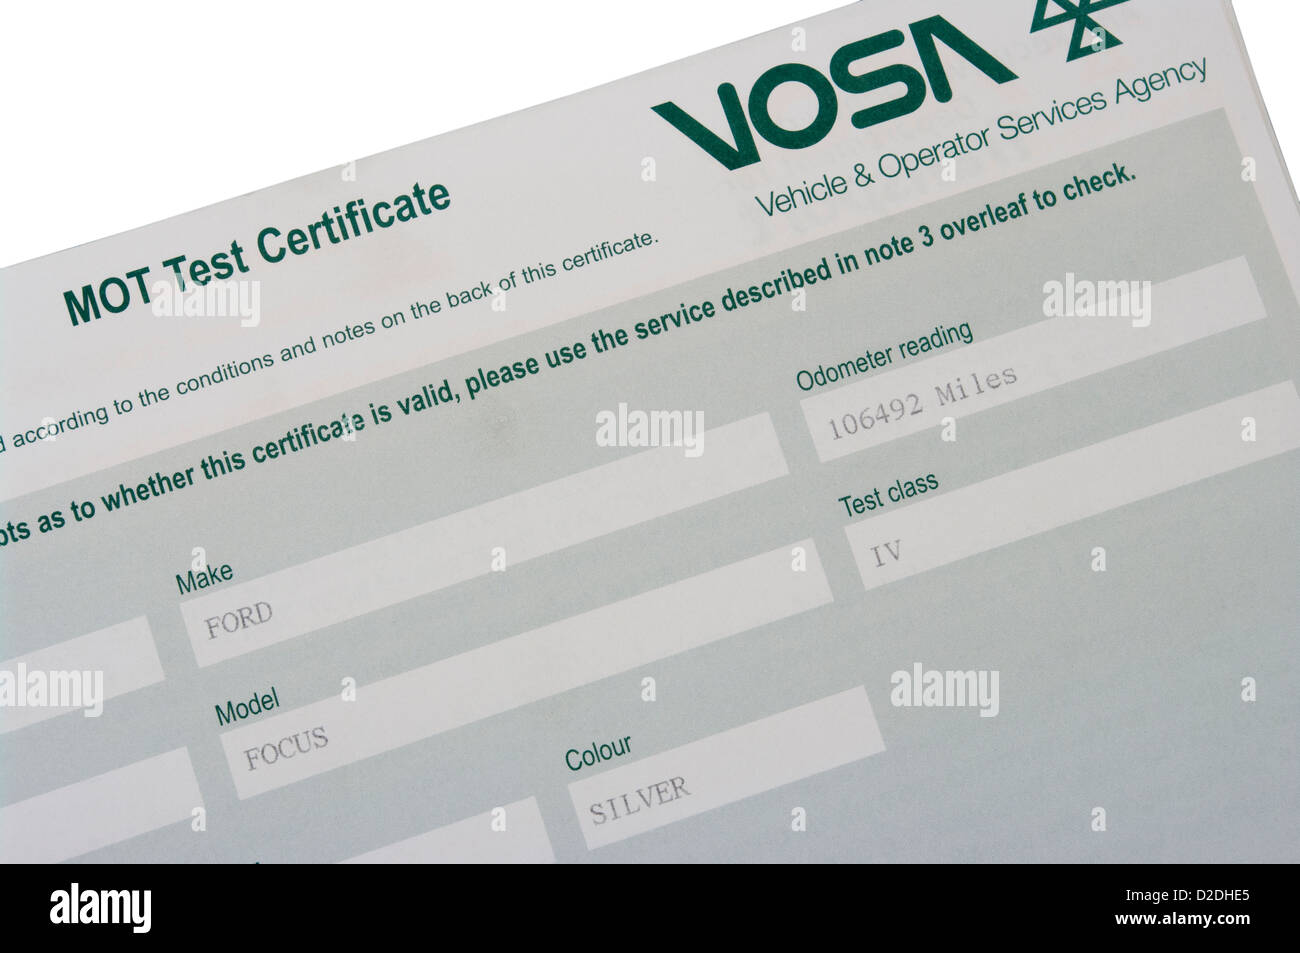 Mot test certificate stock photos mot test certificate stock vehicle and operator services agency mot test certificate stock image 1betcityfo Image collections